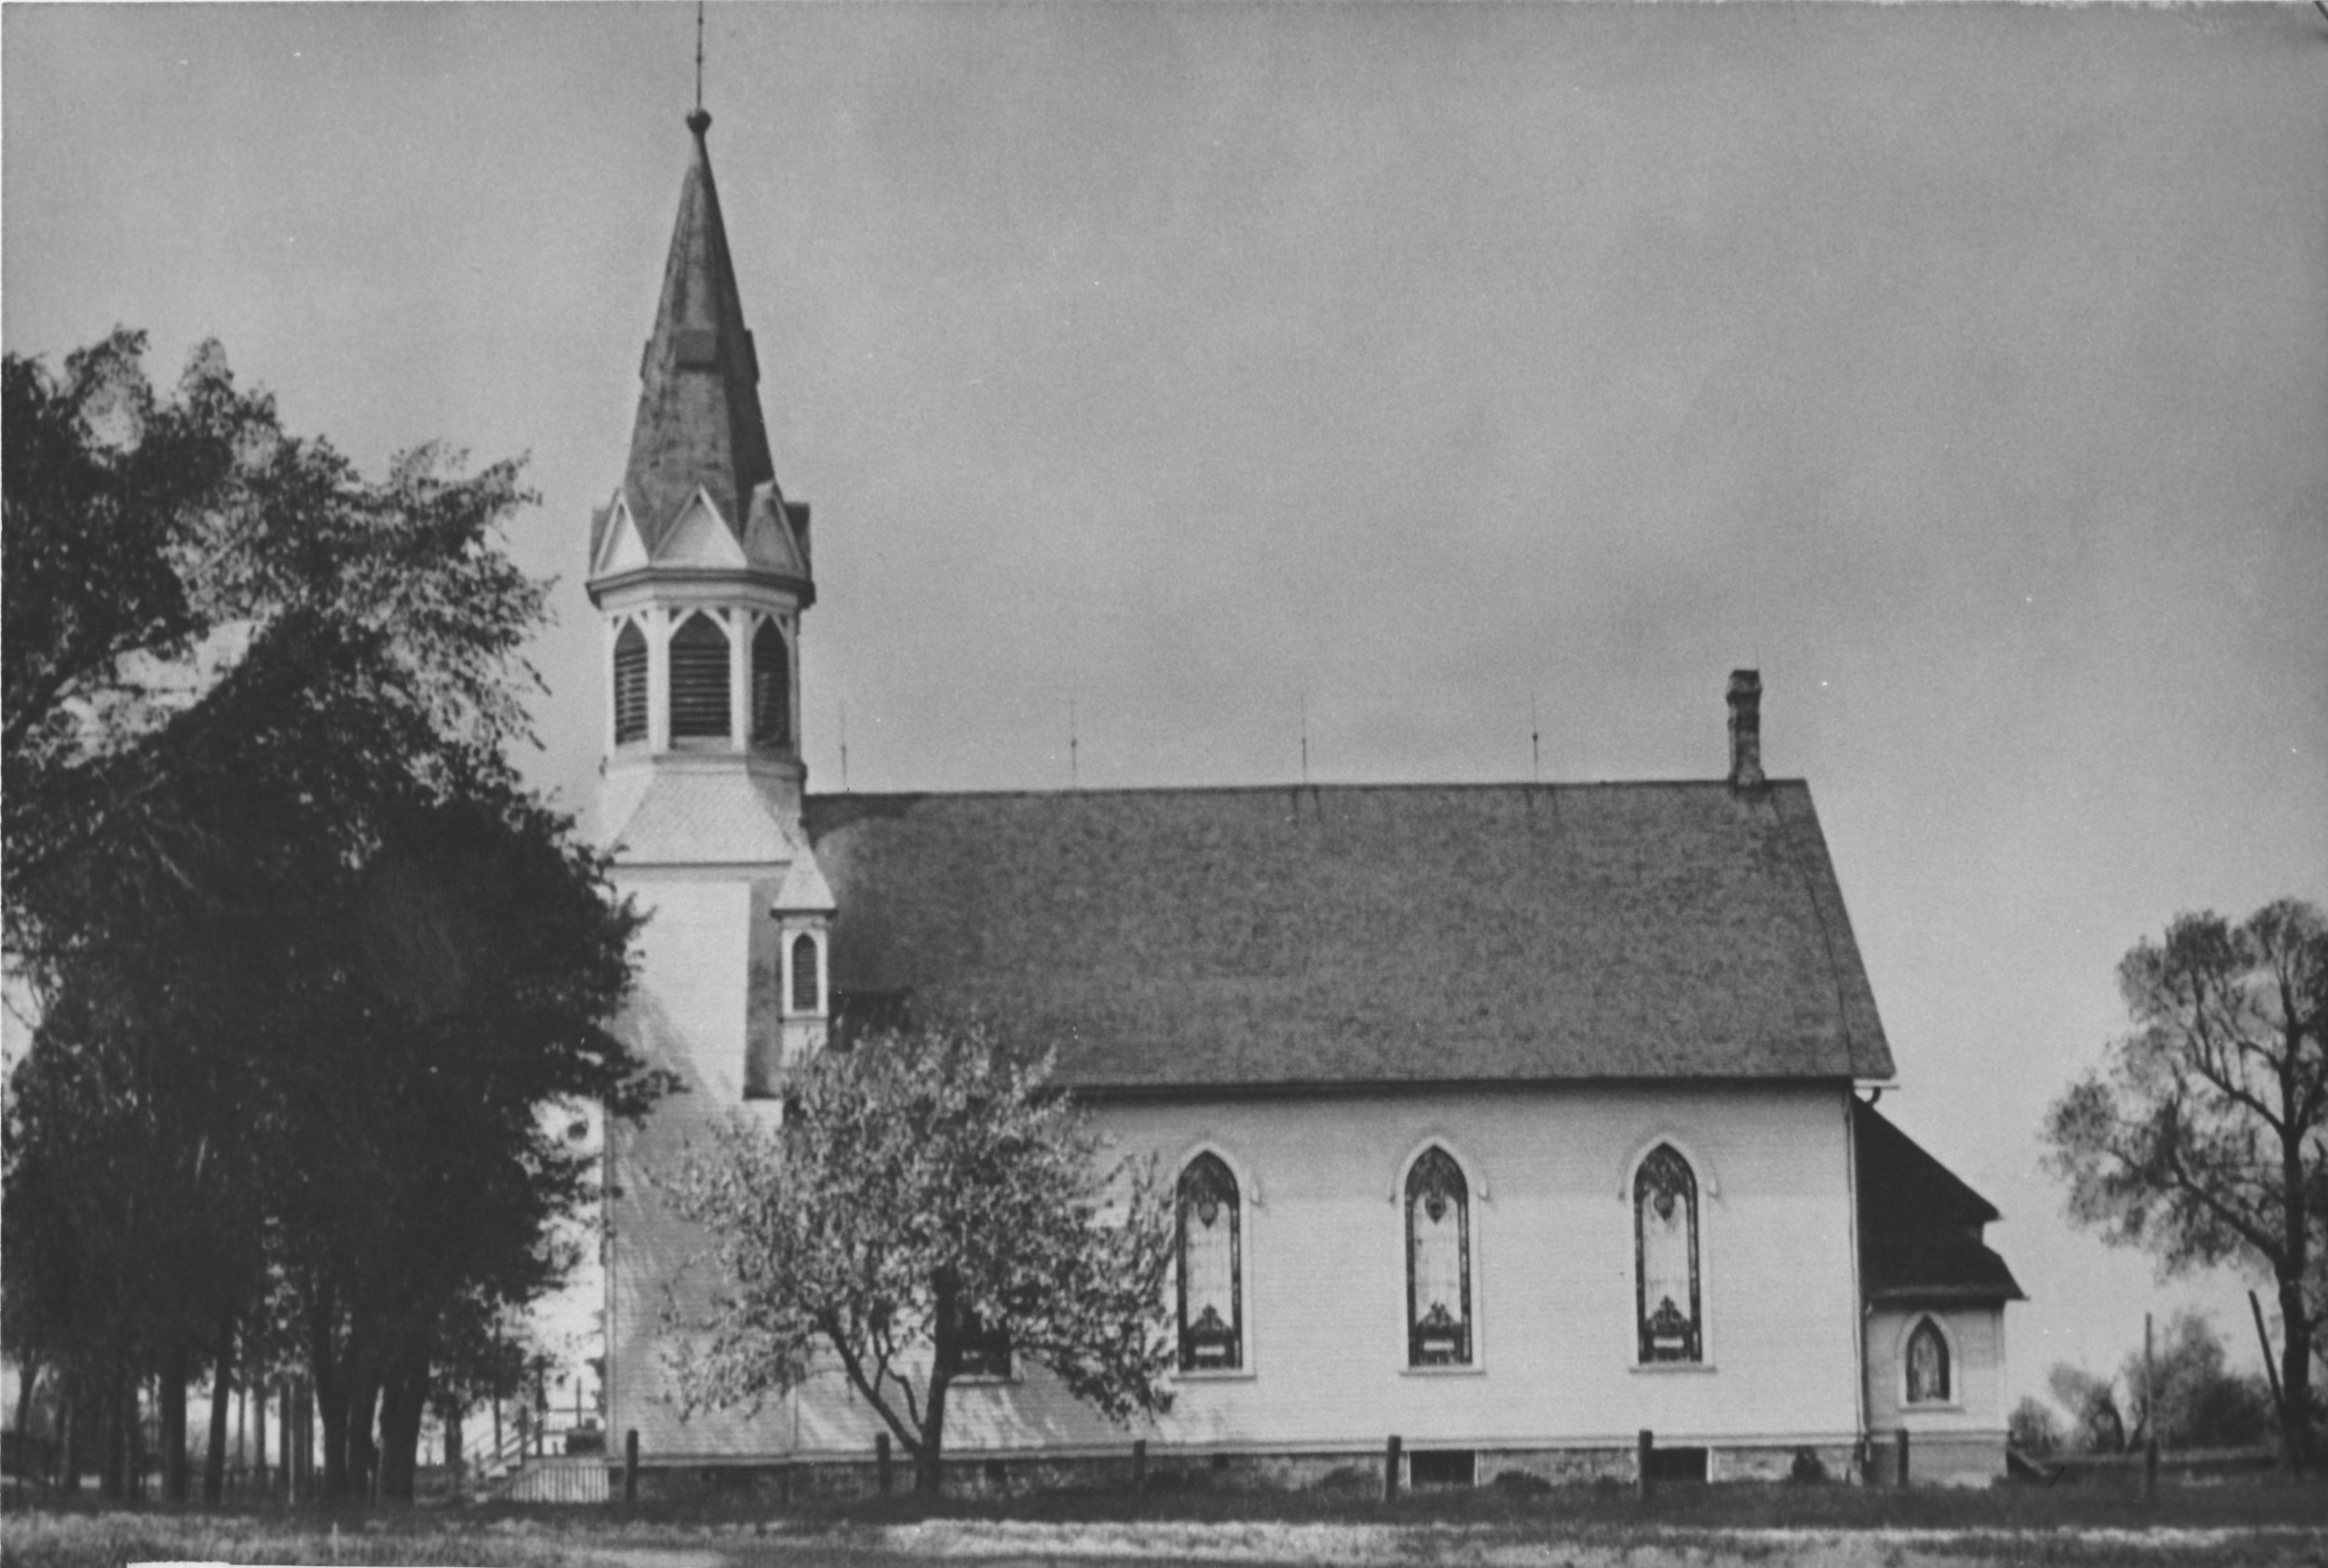 St. John's Church Building, 1930